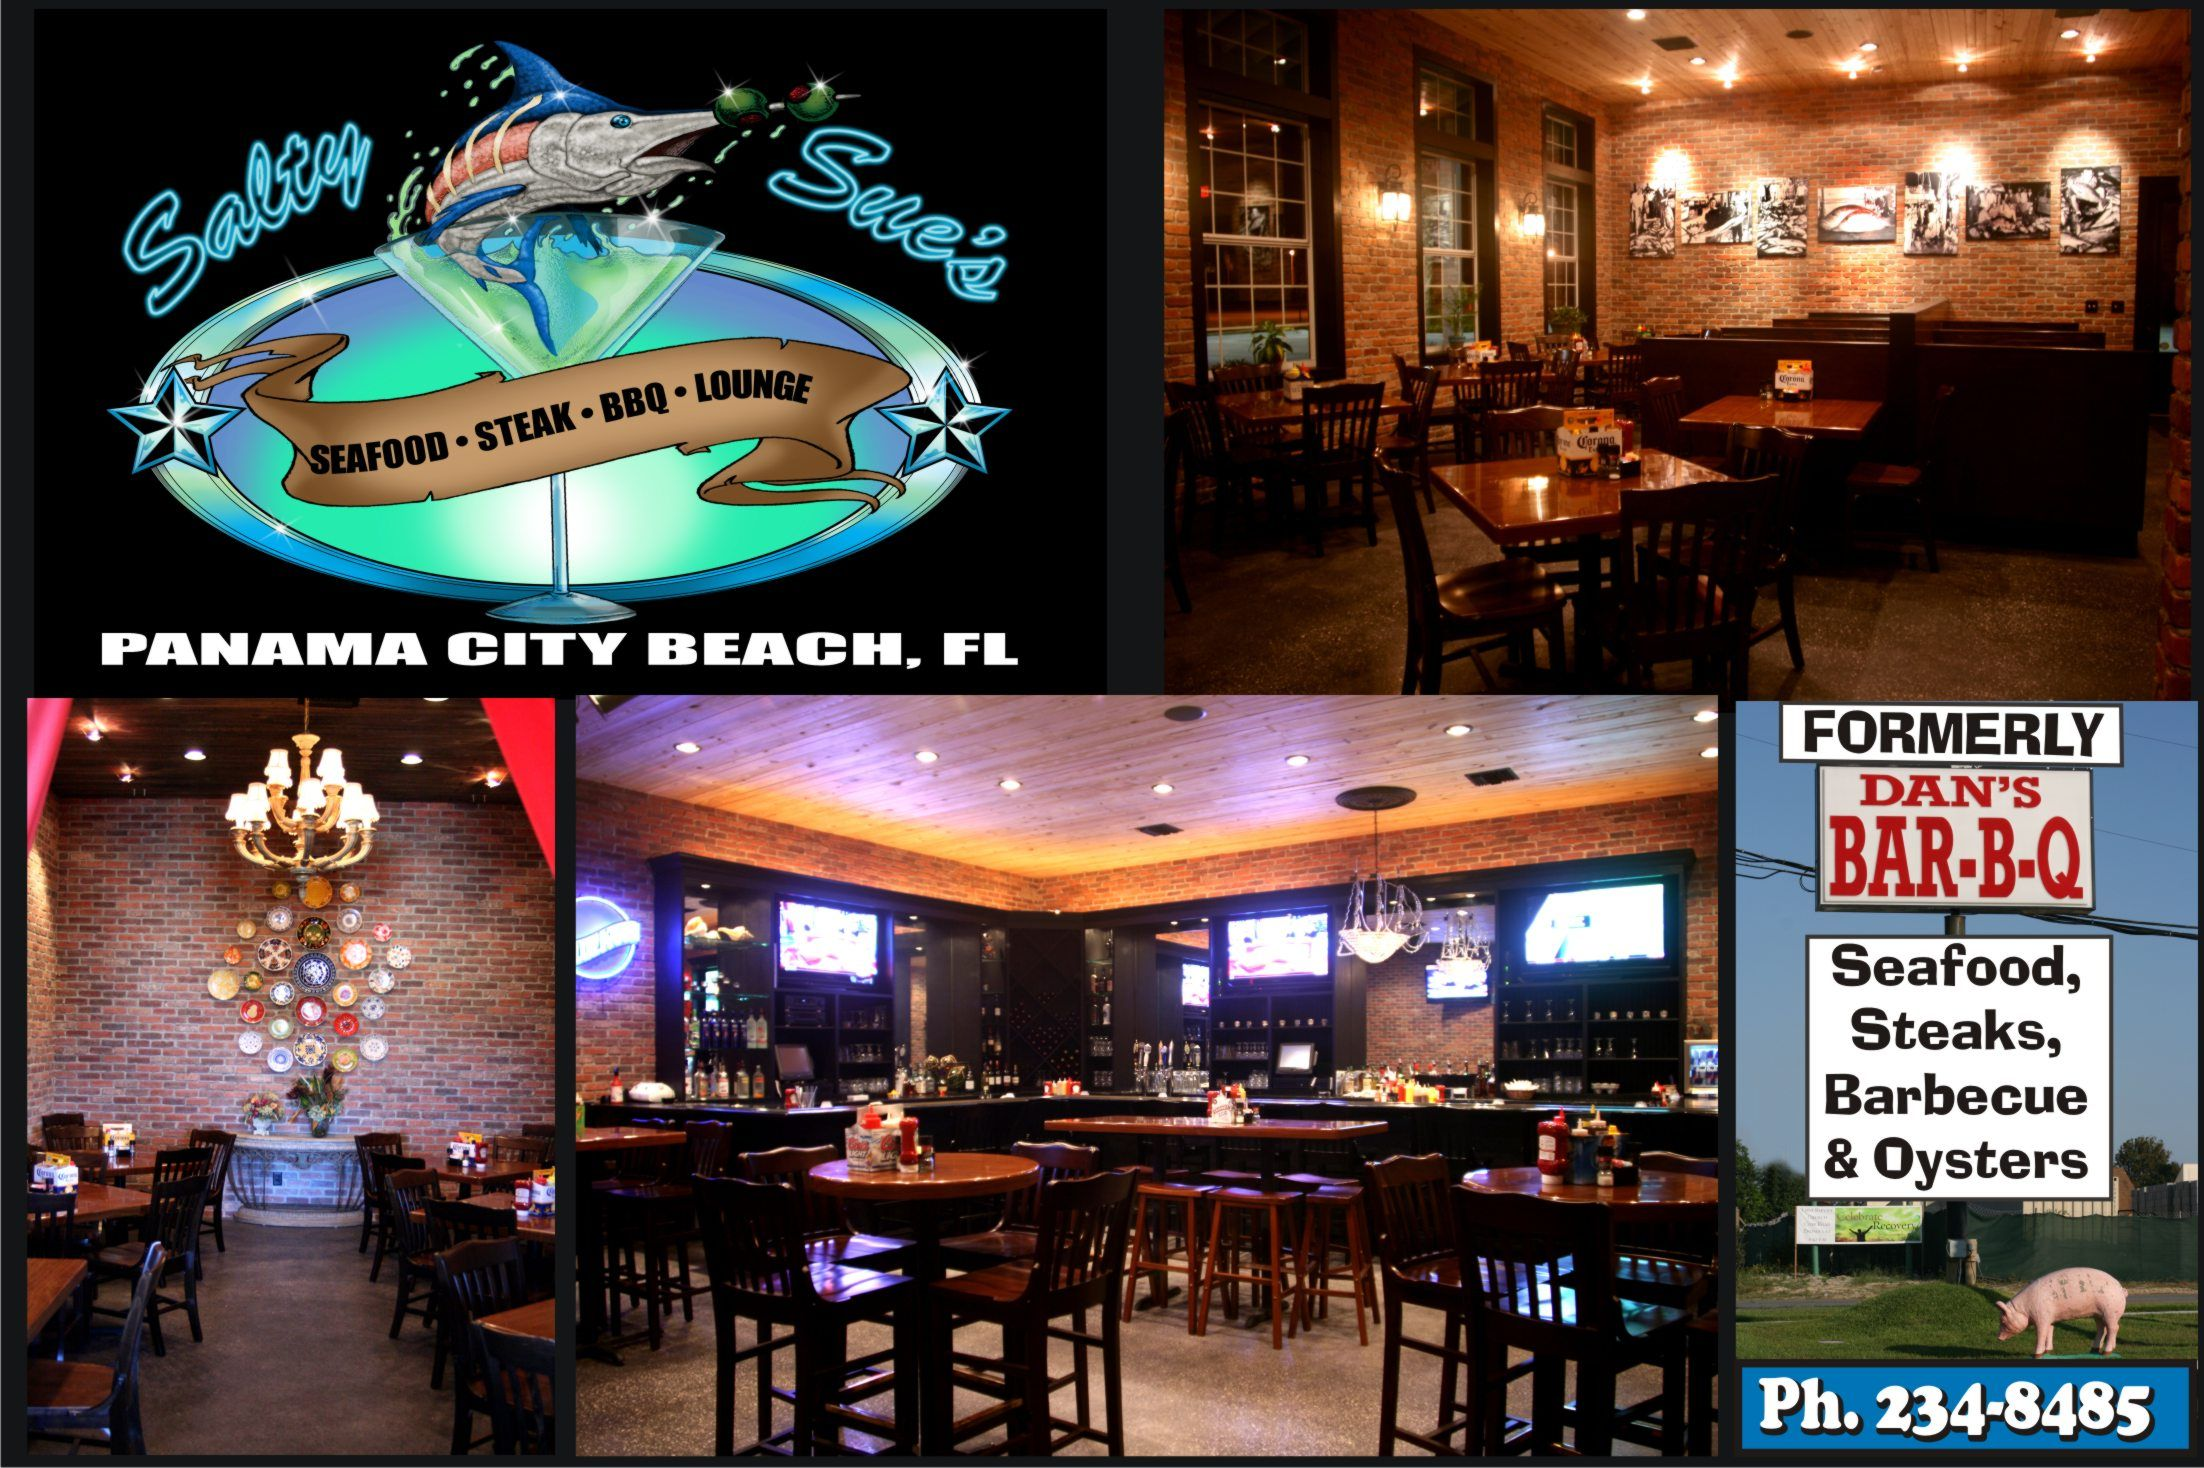 For Over Five Years Salty Sue S Has Been The Place For The People Of Panama City To Grab A Refreshing Brew Catch The Game On One Of Panama City Beach